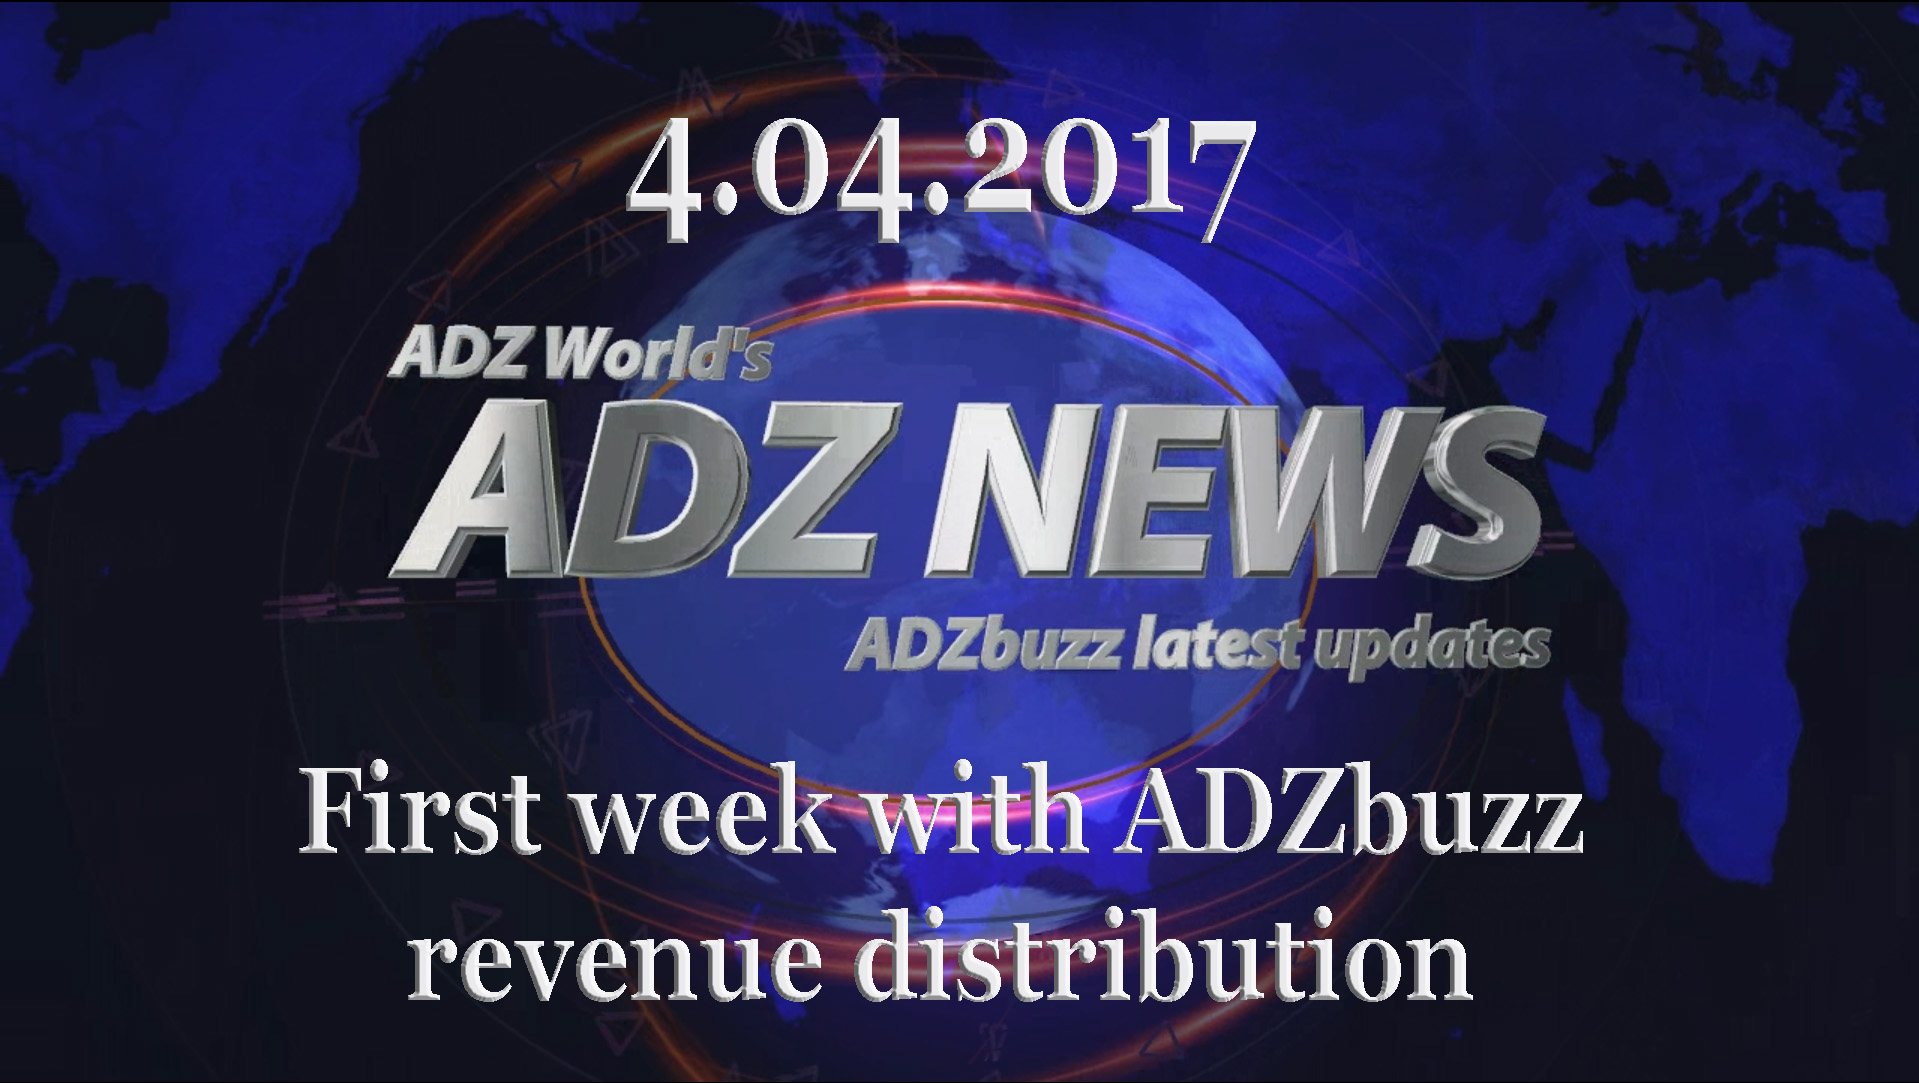 ADZ News – First week with revenue distribution